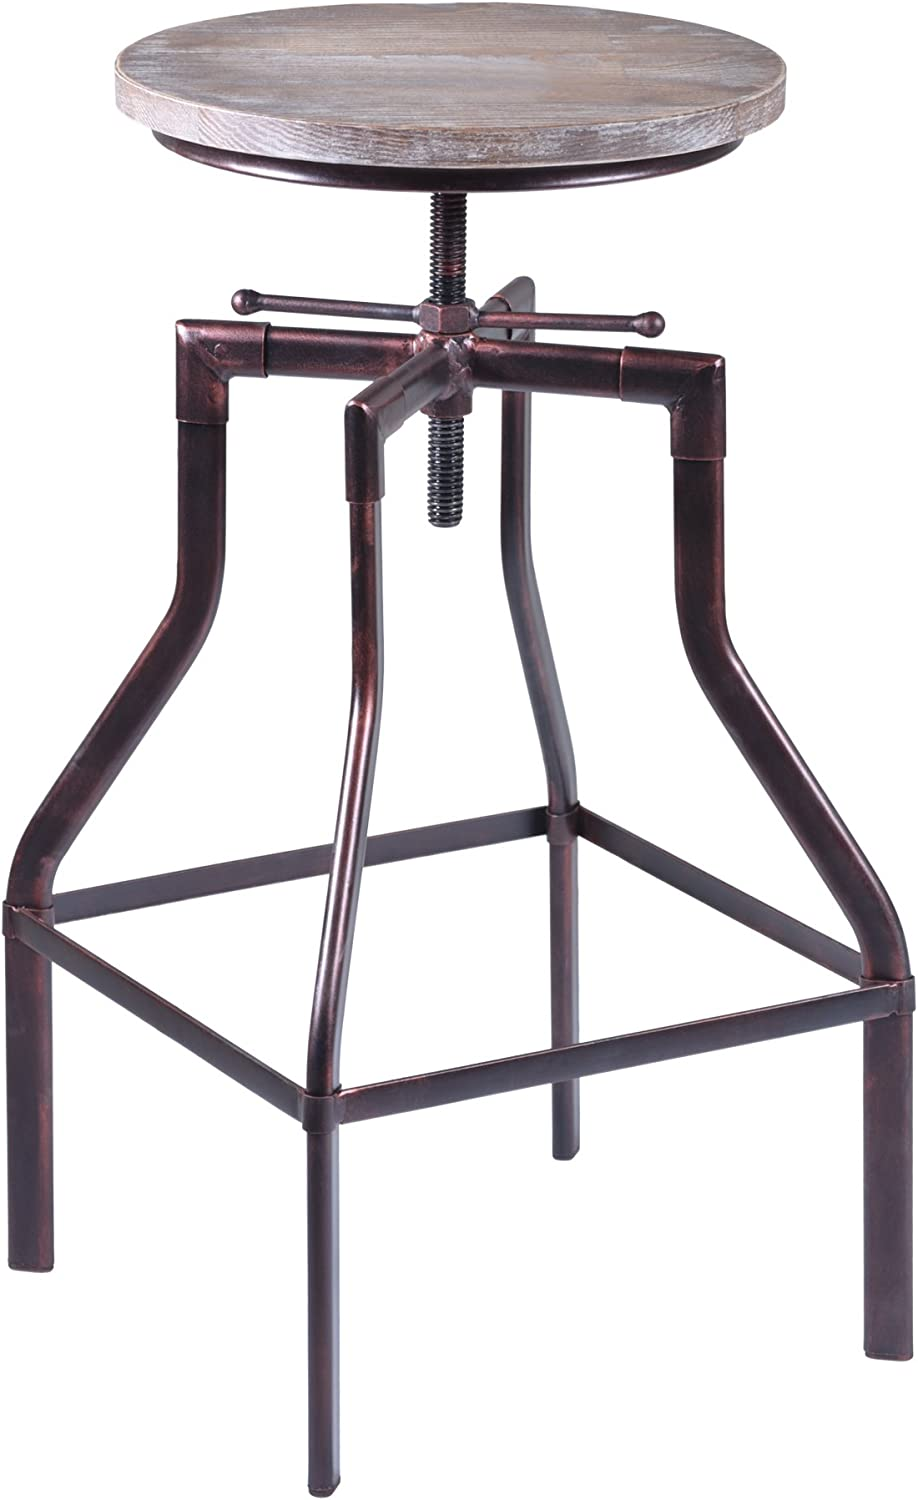 Armen Living Concord Adjustable Barstool in Pine Wood and Industrial Copper Finish